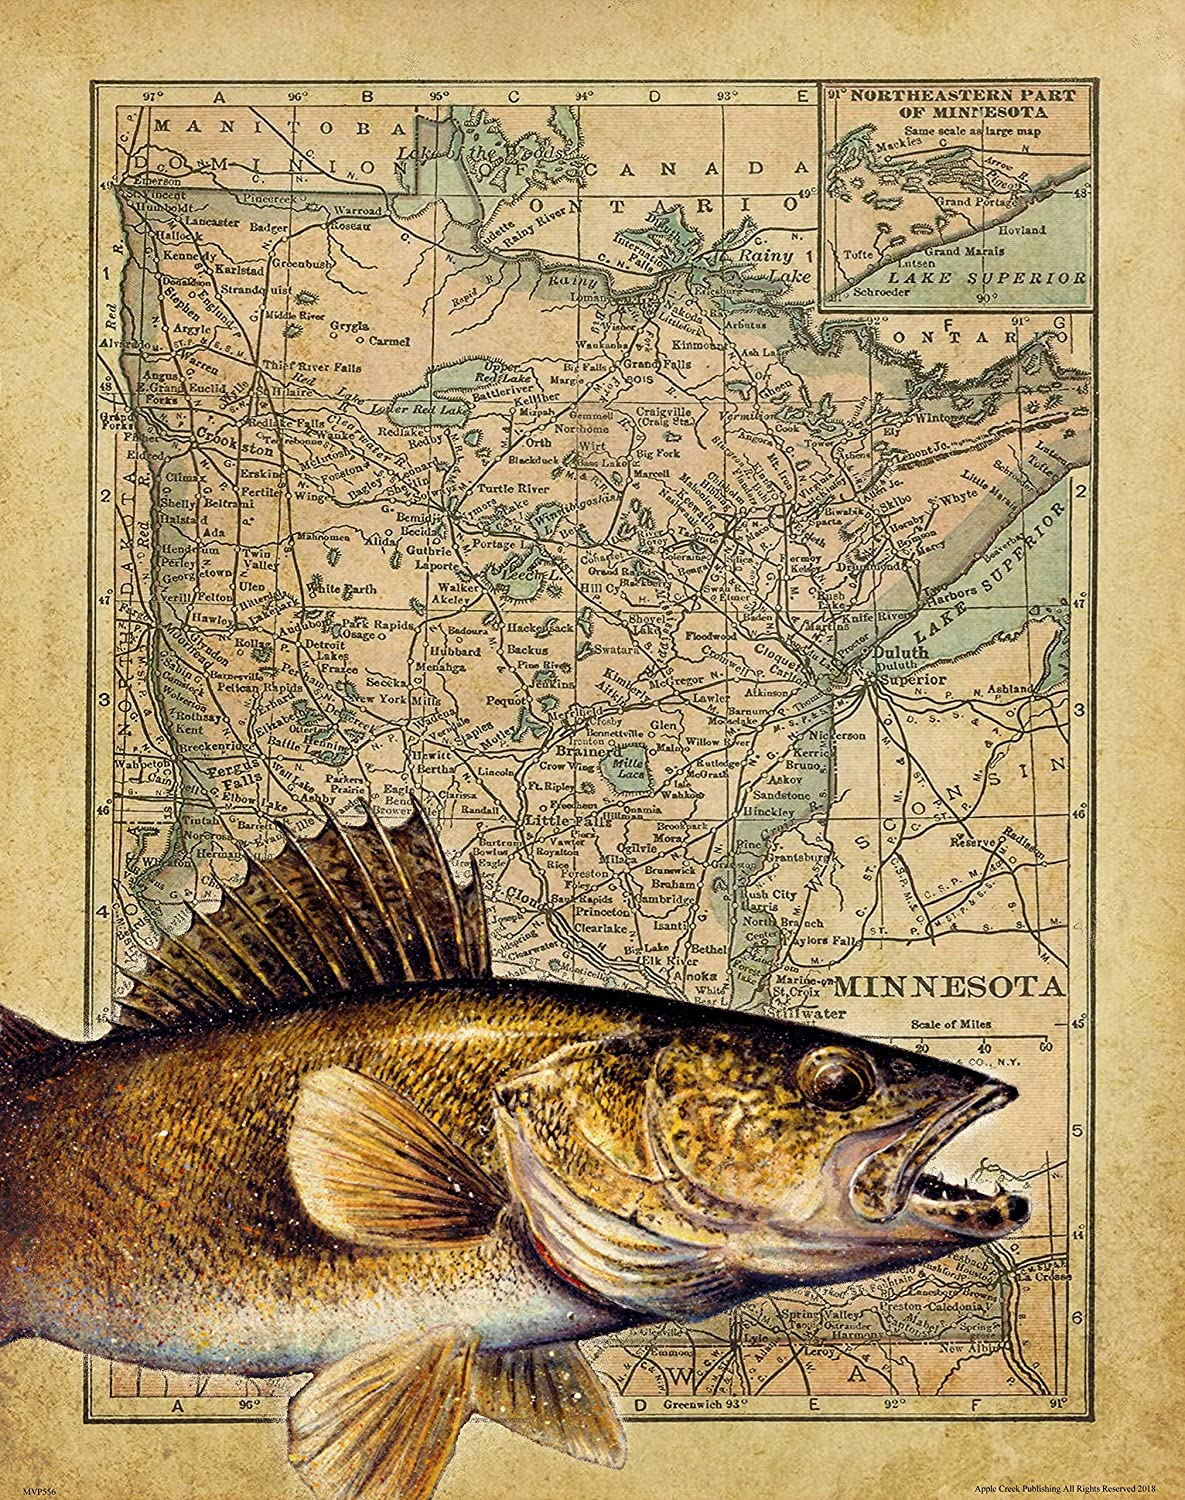 Apple Creek Minnesota State Map Walleye Pike Fishing Lures Poster Art Print 11x14 Cabin Decor Pictures